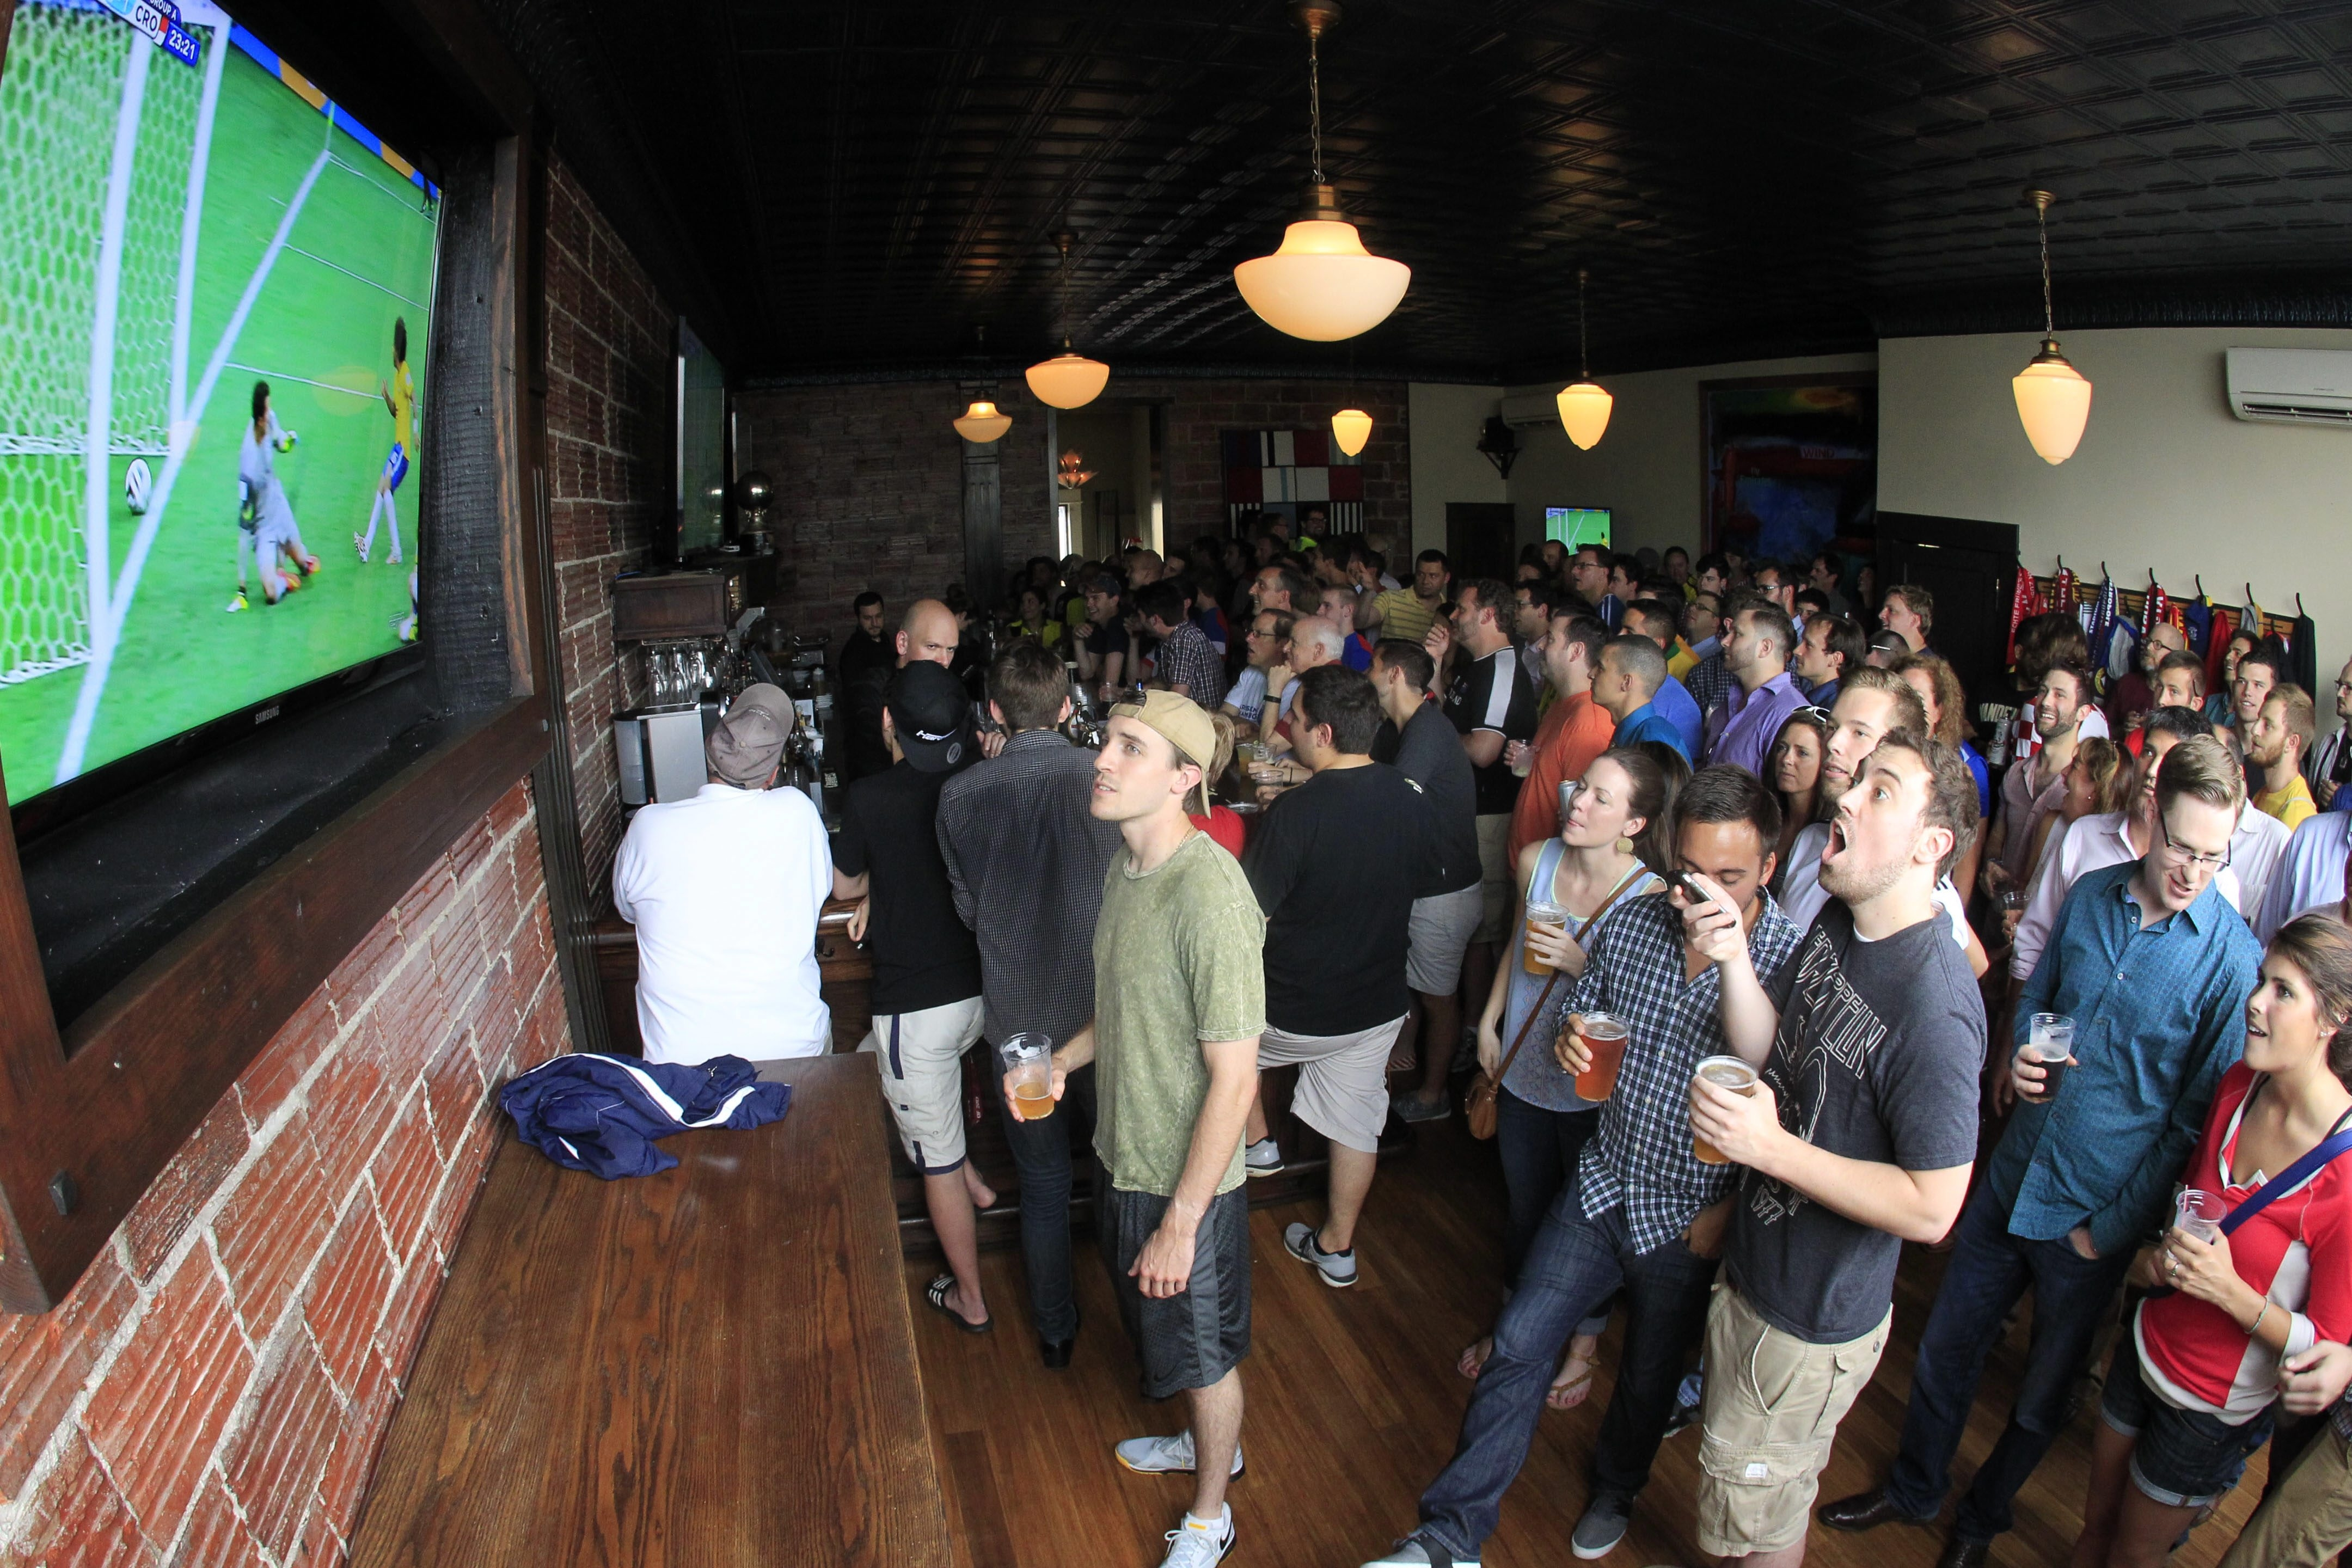 Soccer fans watch a World Cup game at Mes Que on Hertel Avenue Thursday. The bar has become a popular spot for major soccer action.